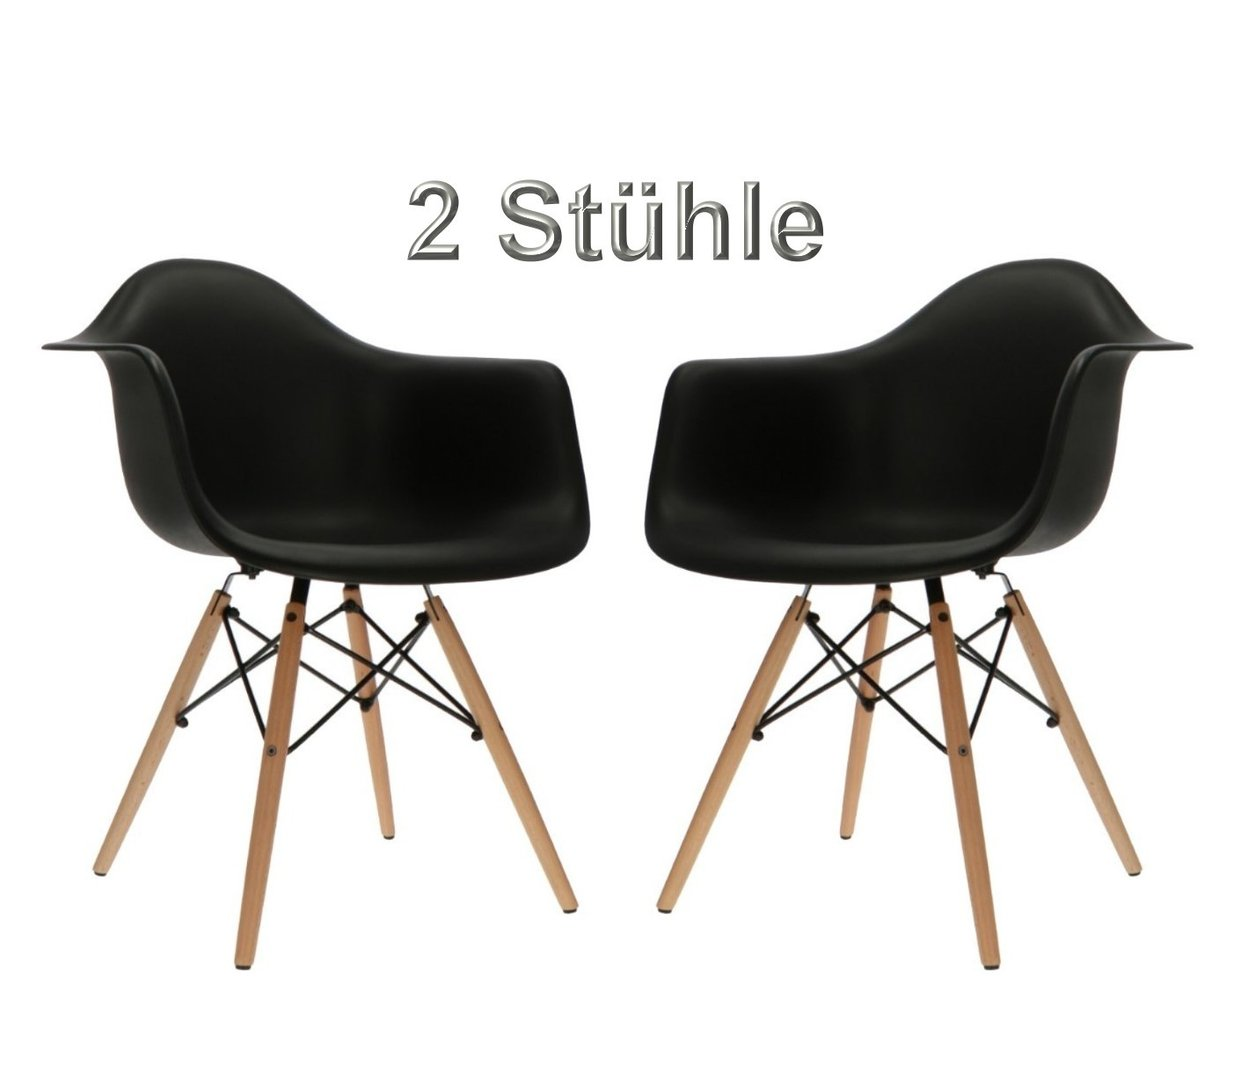 Shell Chair Dining Chairs Scandinavian Design Set Of 2 In Black Rich Infusions Special Products For Special People